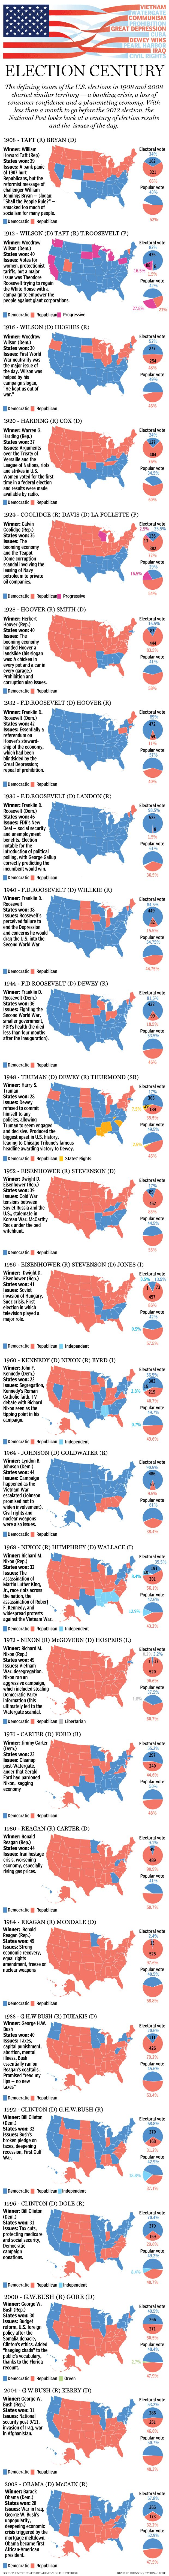 U.S. Elections - 100 years | V